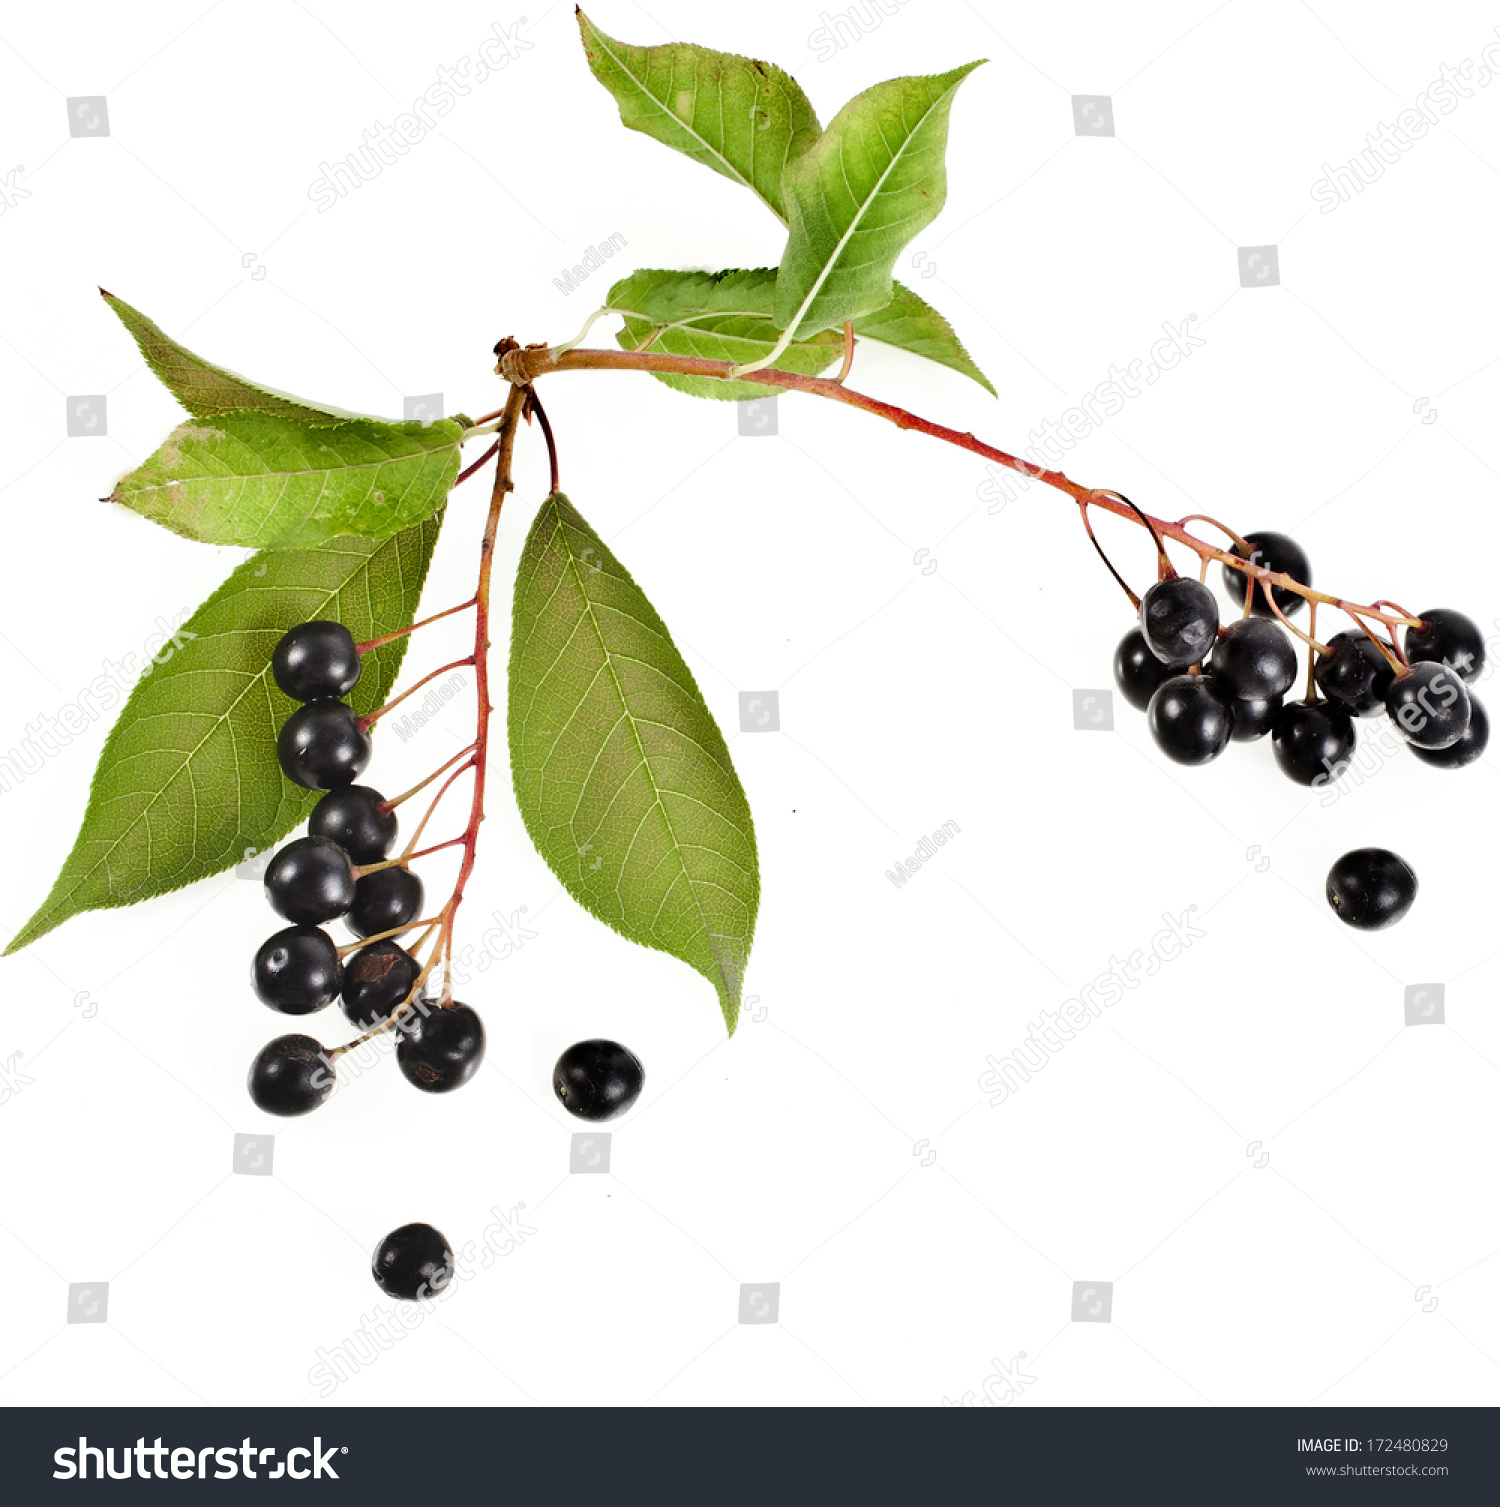 Branch Birdcherry Tree Prunus Padus Isolated Stock Photo